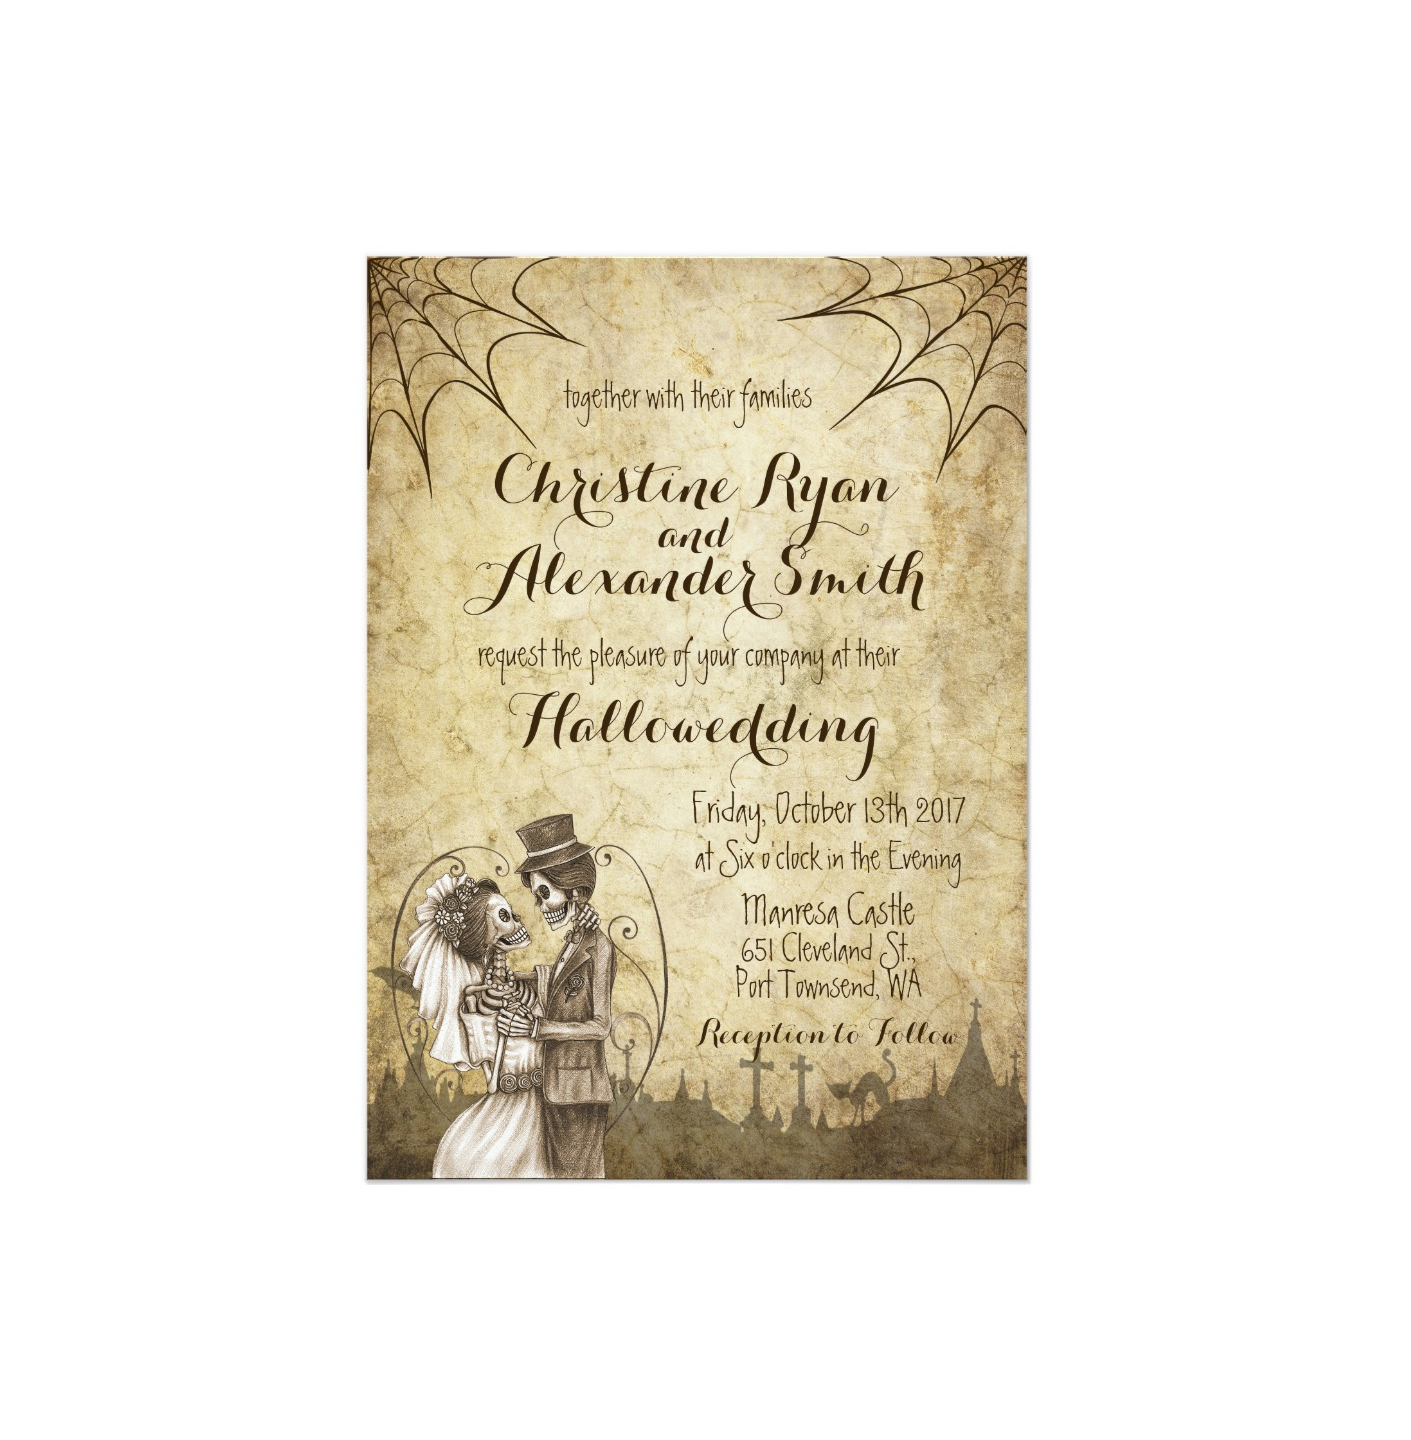 Halloween Wedding Invitations Your Guests Will Love – Halloween Wedding Reception Invitations